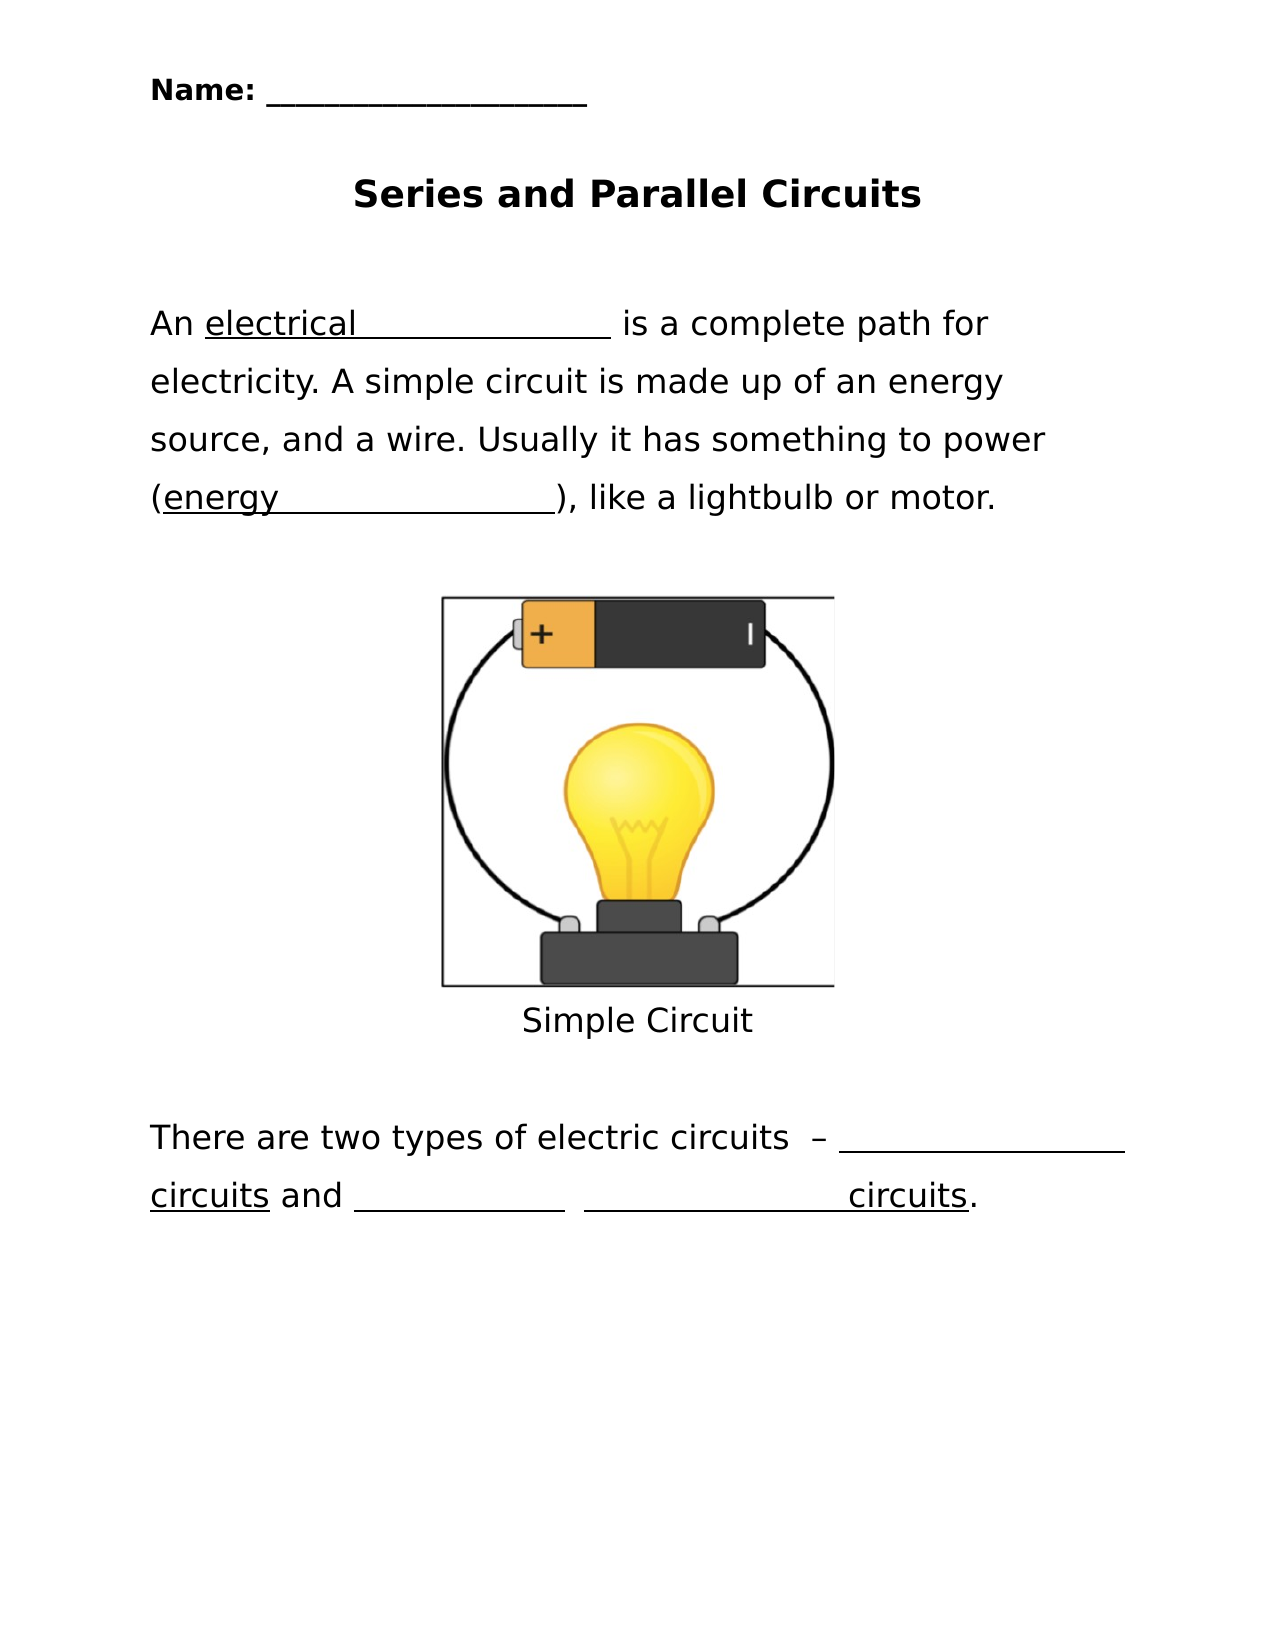 Teaching Resources Ninja Plans Series Circuit Electricity And Parallel Circuits Worksheet